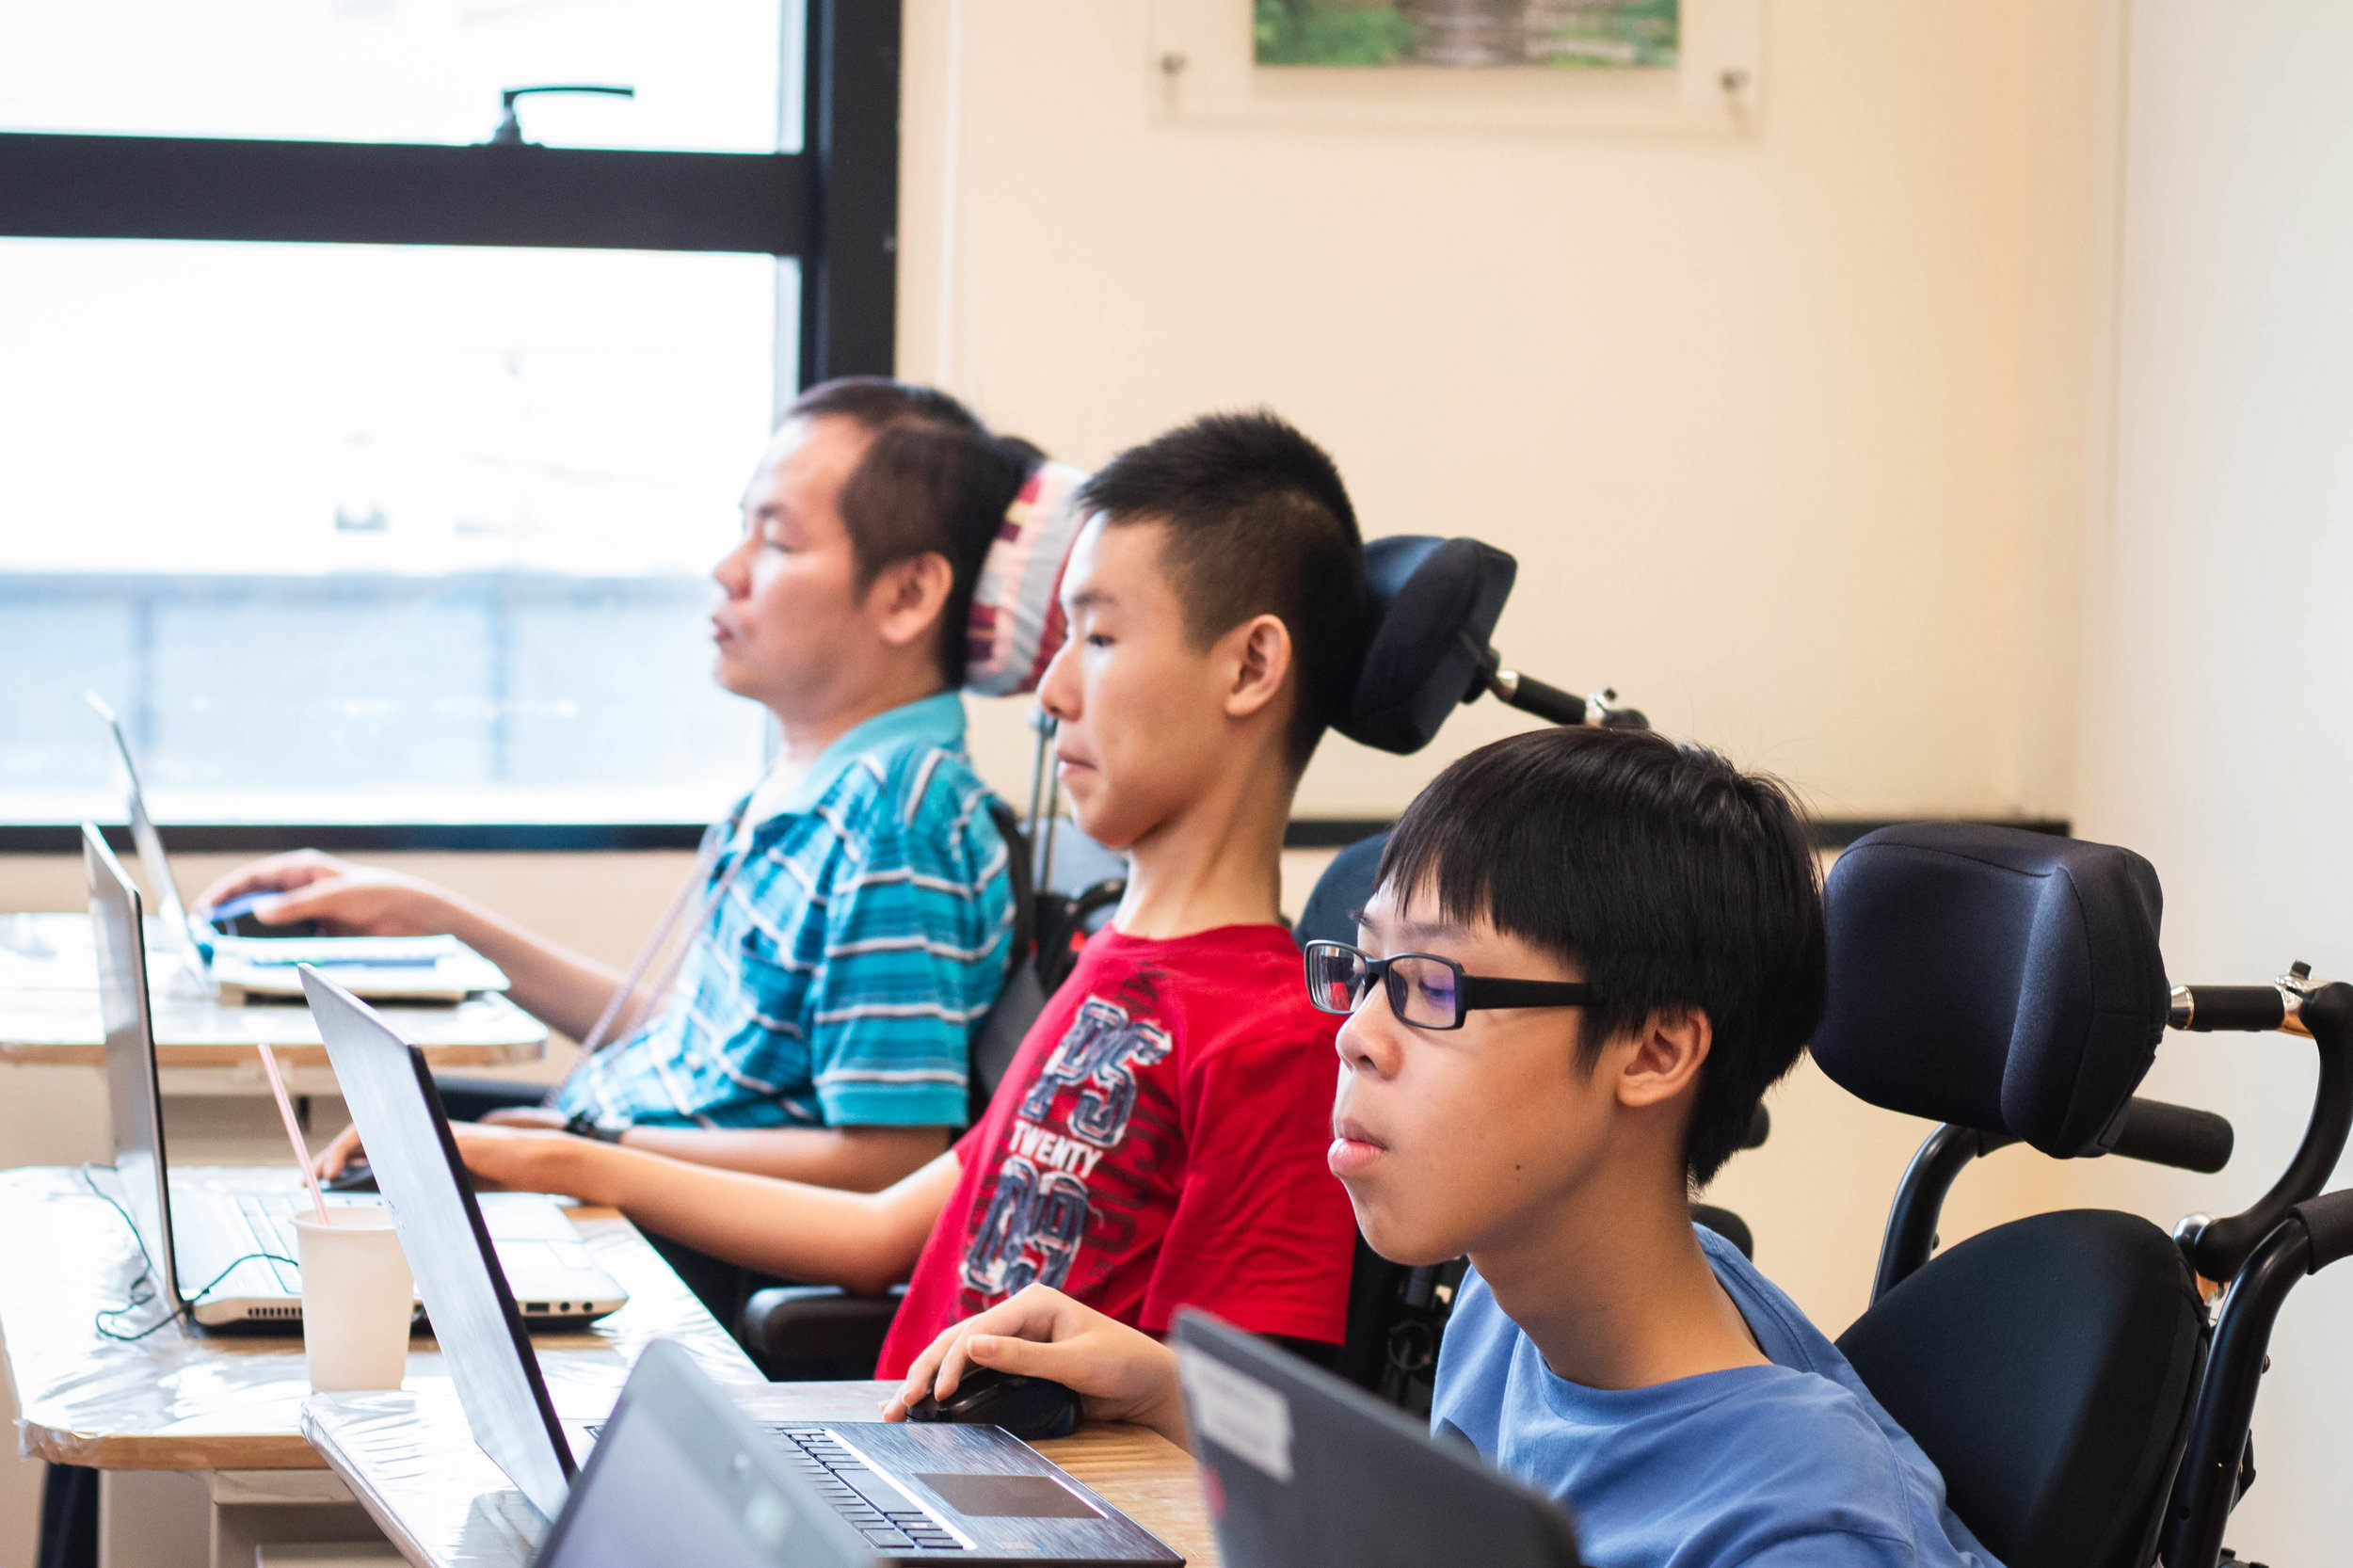 MDAS-Muscular-dystrophy-association-singapore-youth-connect